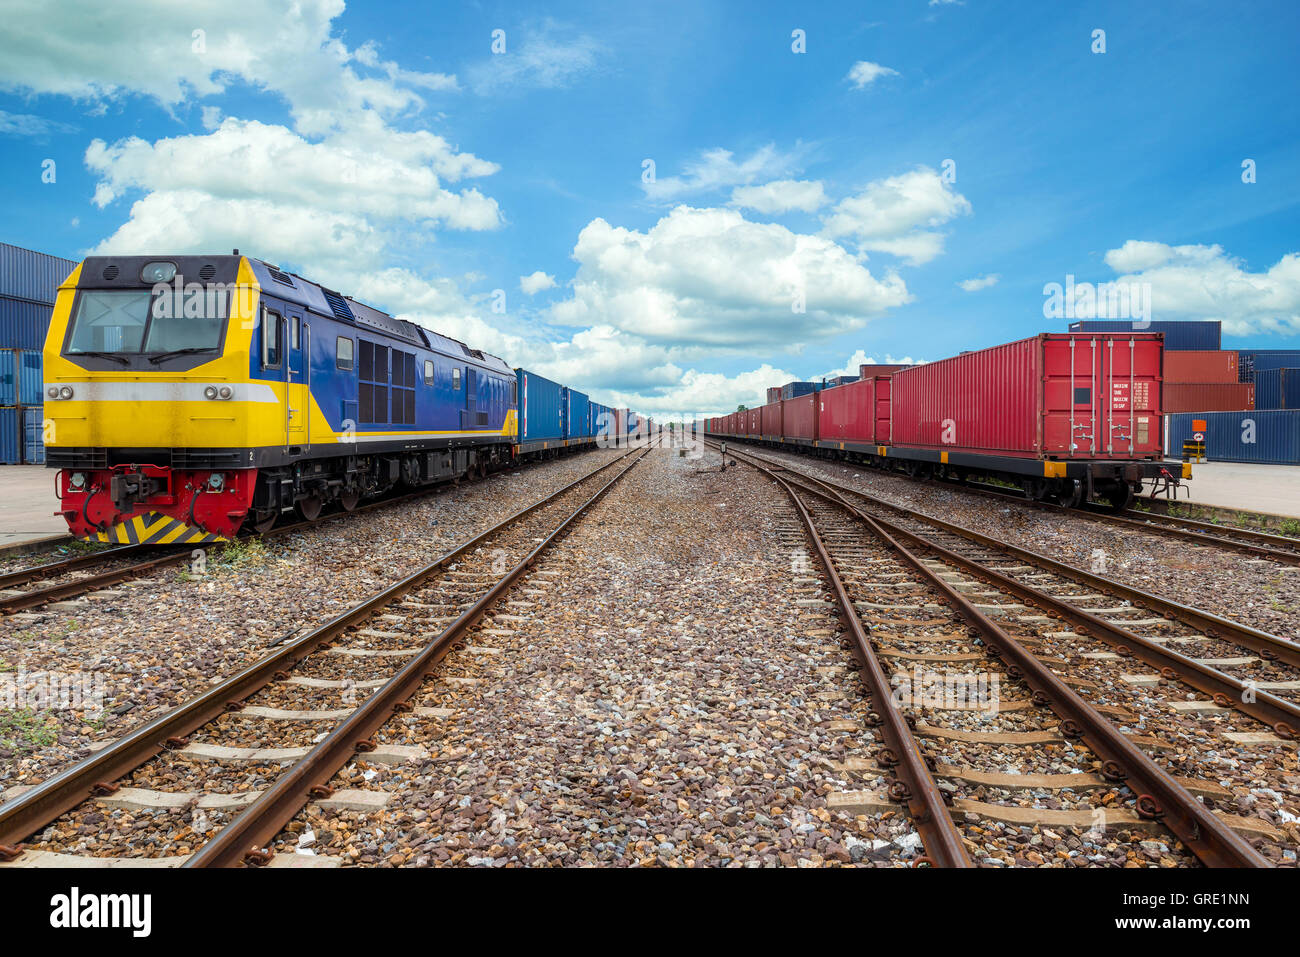 Cargo train platform with freight train container at depot in port use for export logistics background - Stock Image